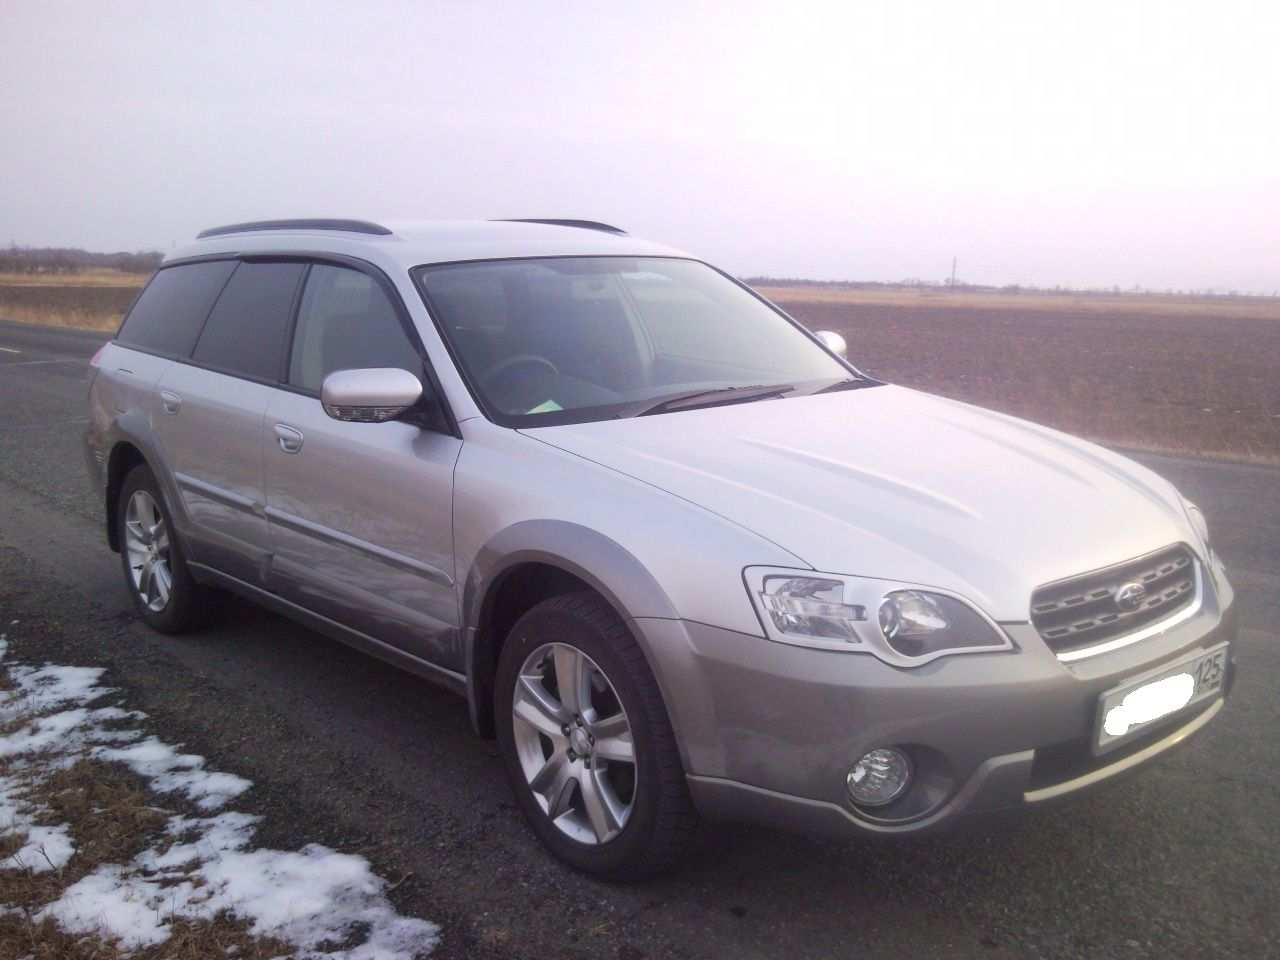 Used 2004 subaru outback photos 3000cc gasoline cvt for sale photo 1 enlarge photo 1280x960 2004 subaru outback photos vanachro Image collections